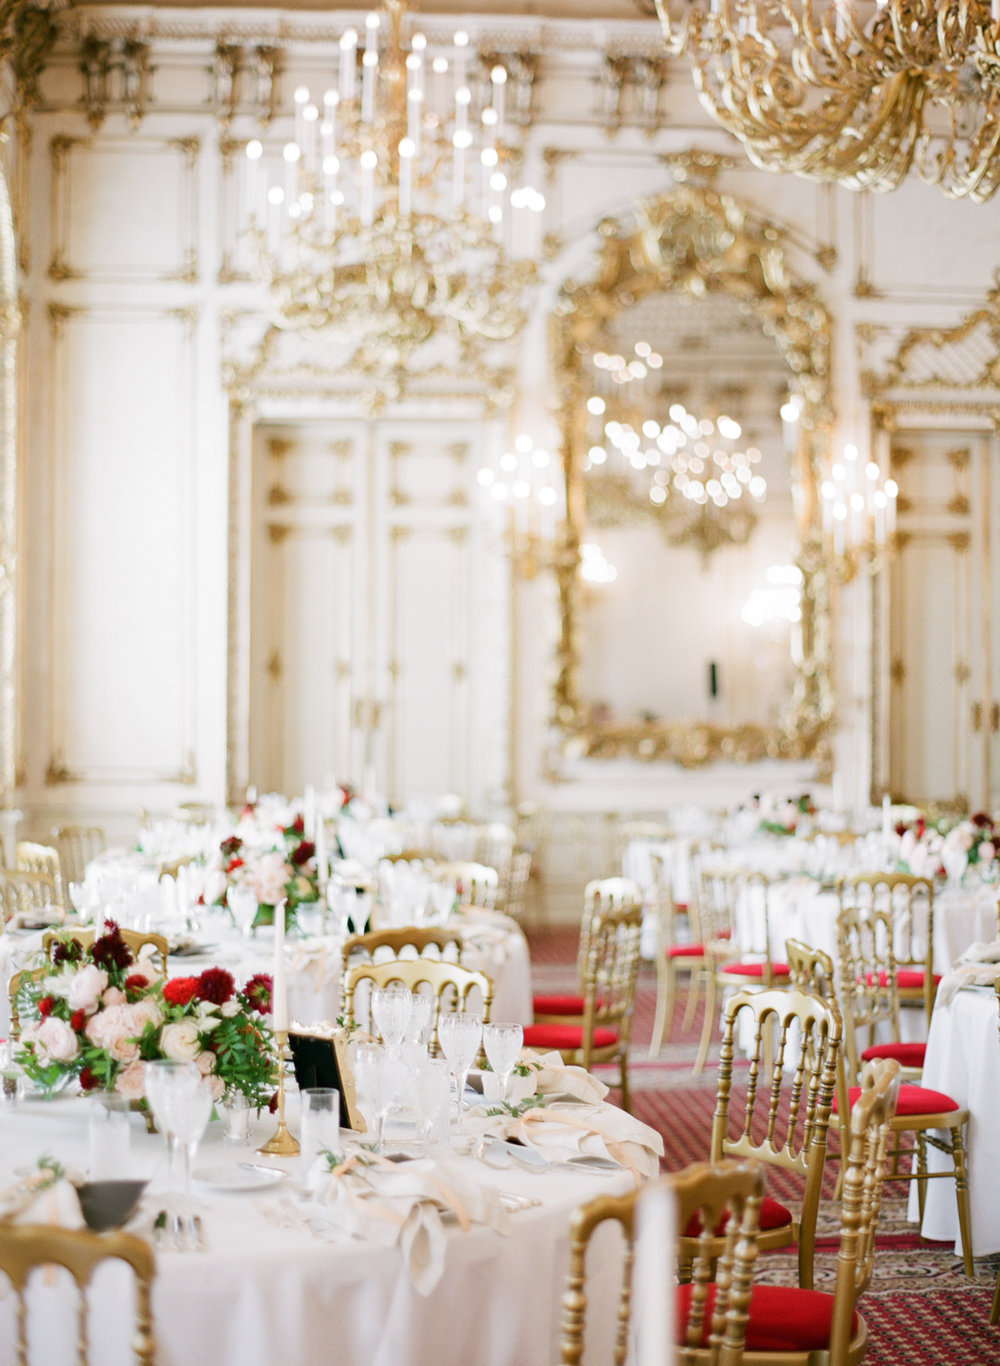 palais pallavicini wedding hotel imperial vienna wedding photographer nikol bodnarova photography 165.JPG